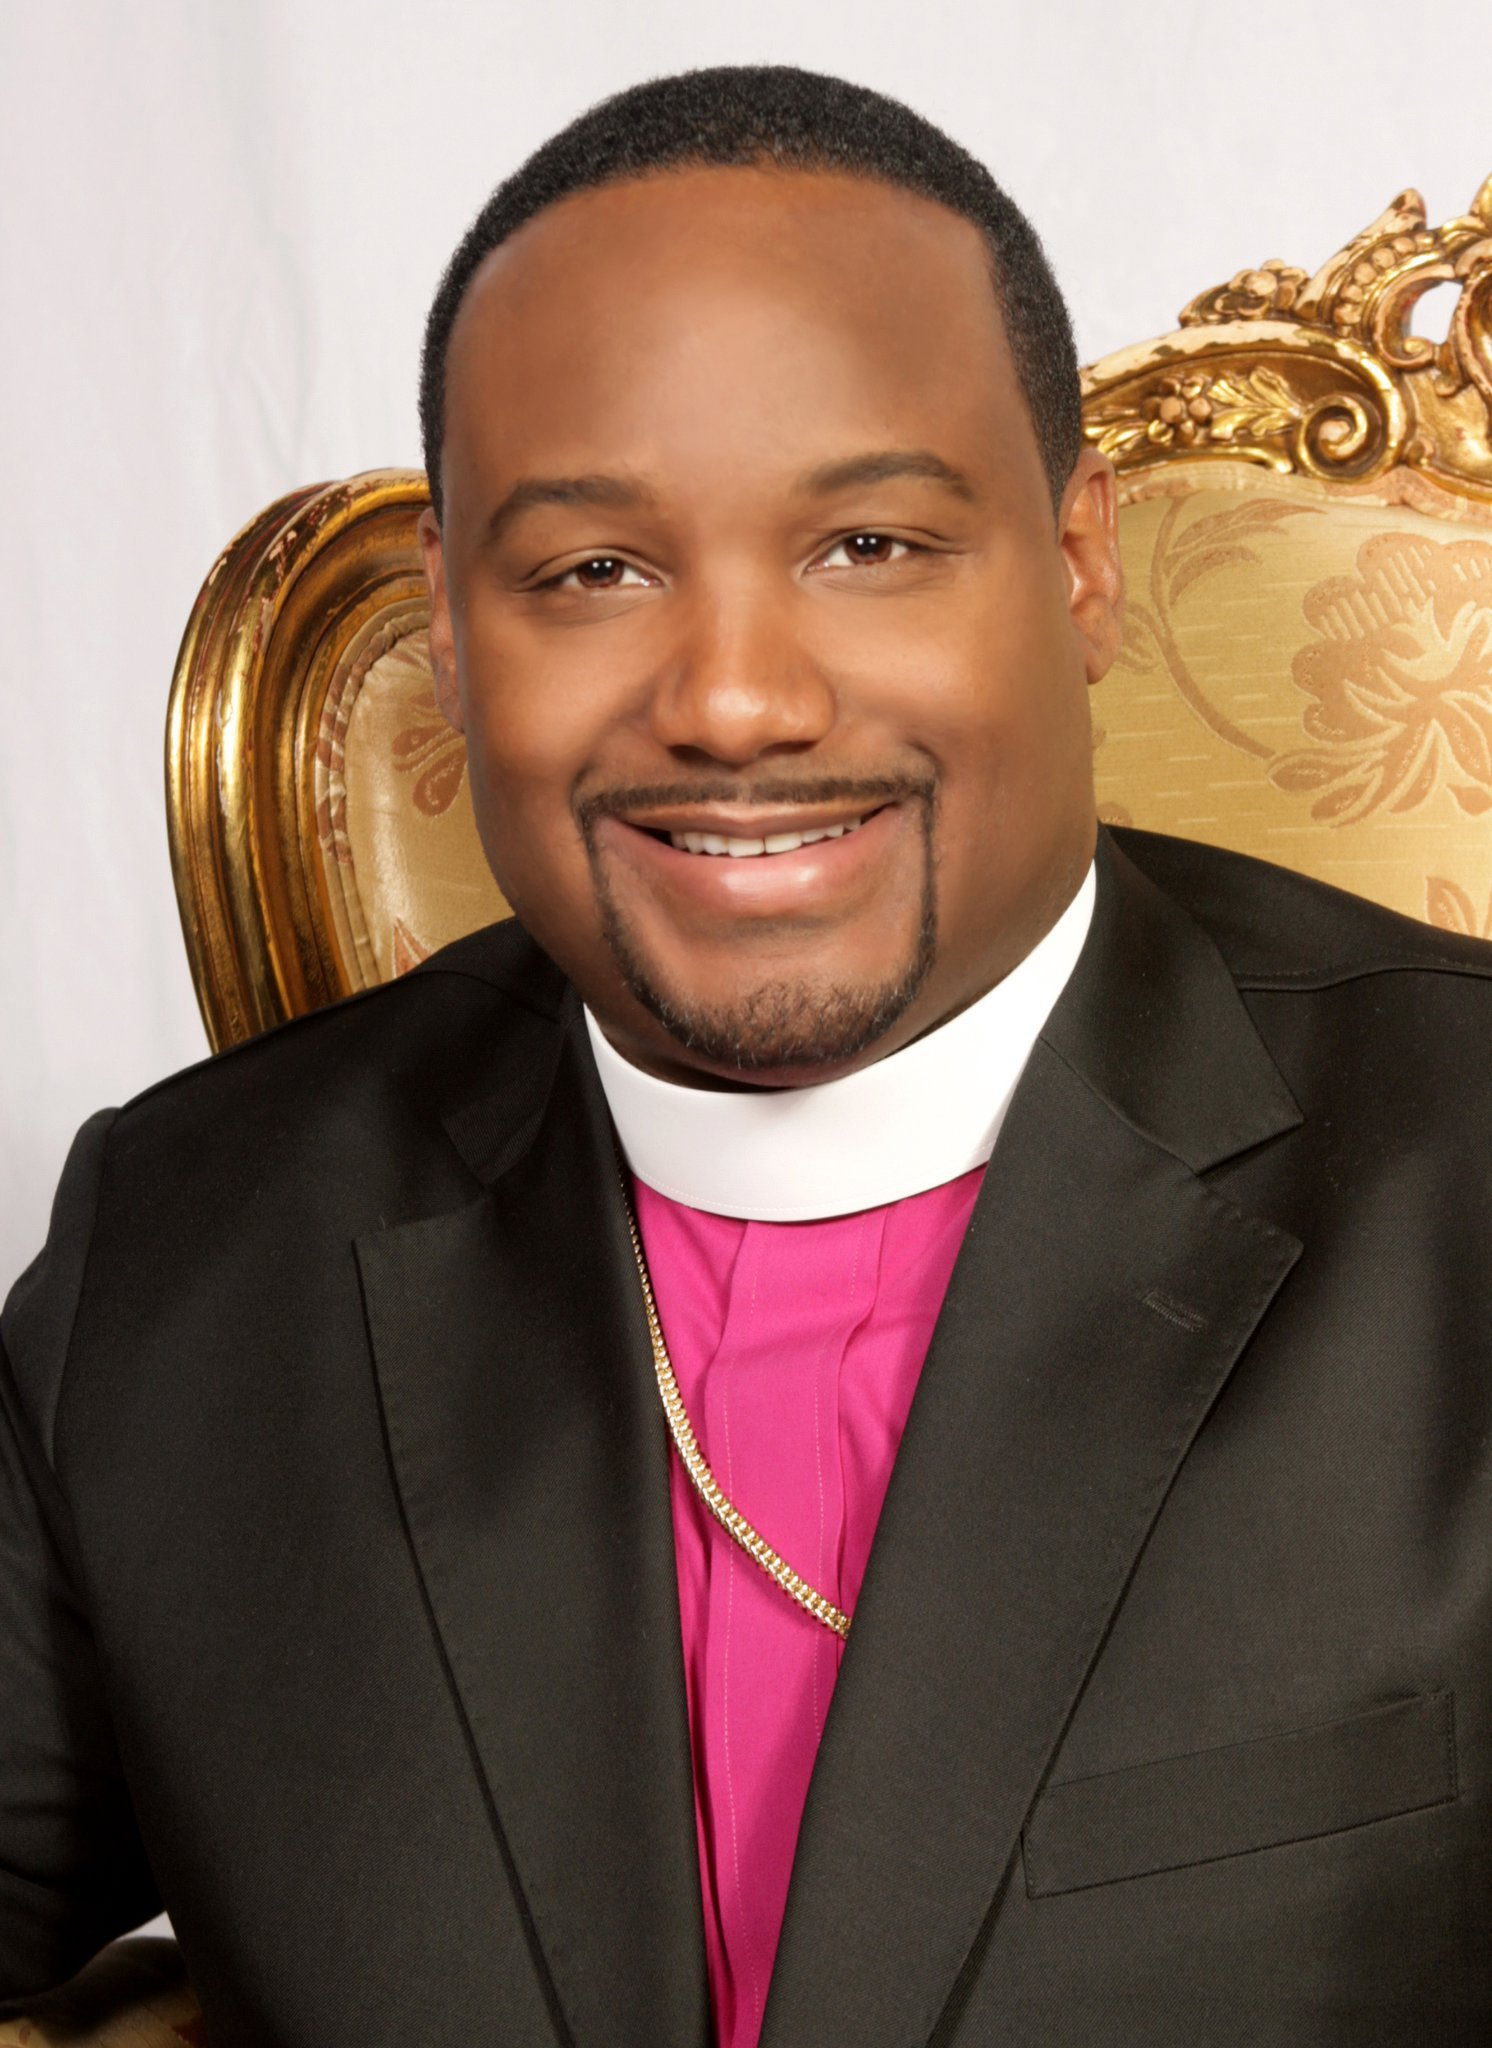 BISHOP ORRIN PULLINGS